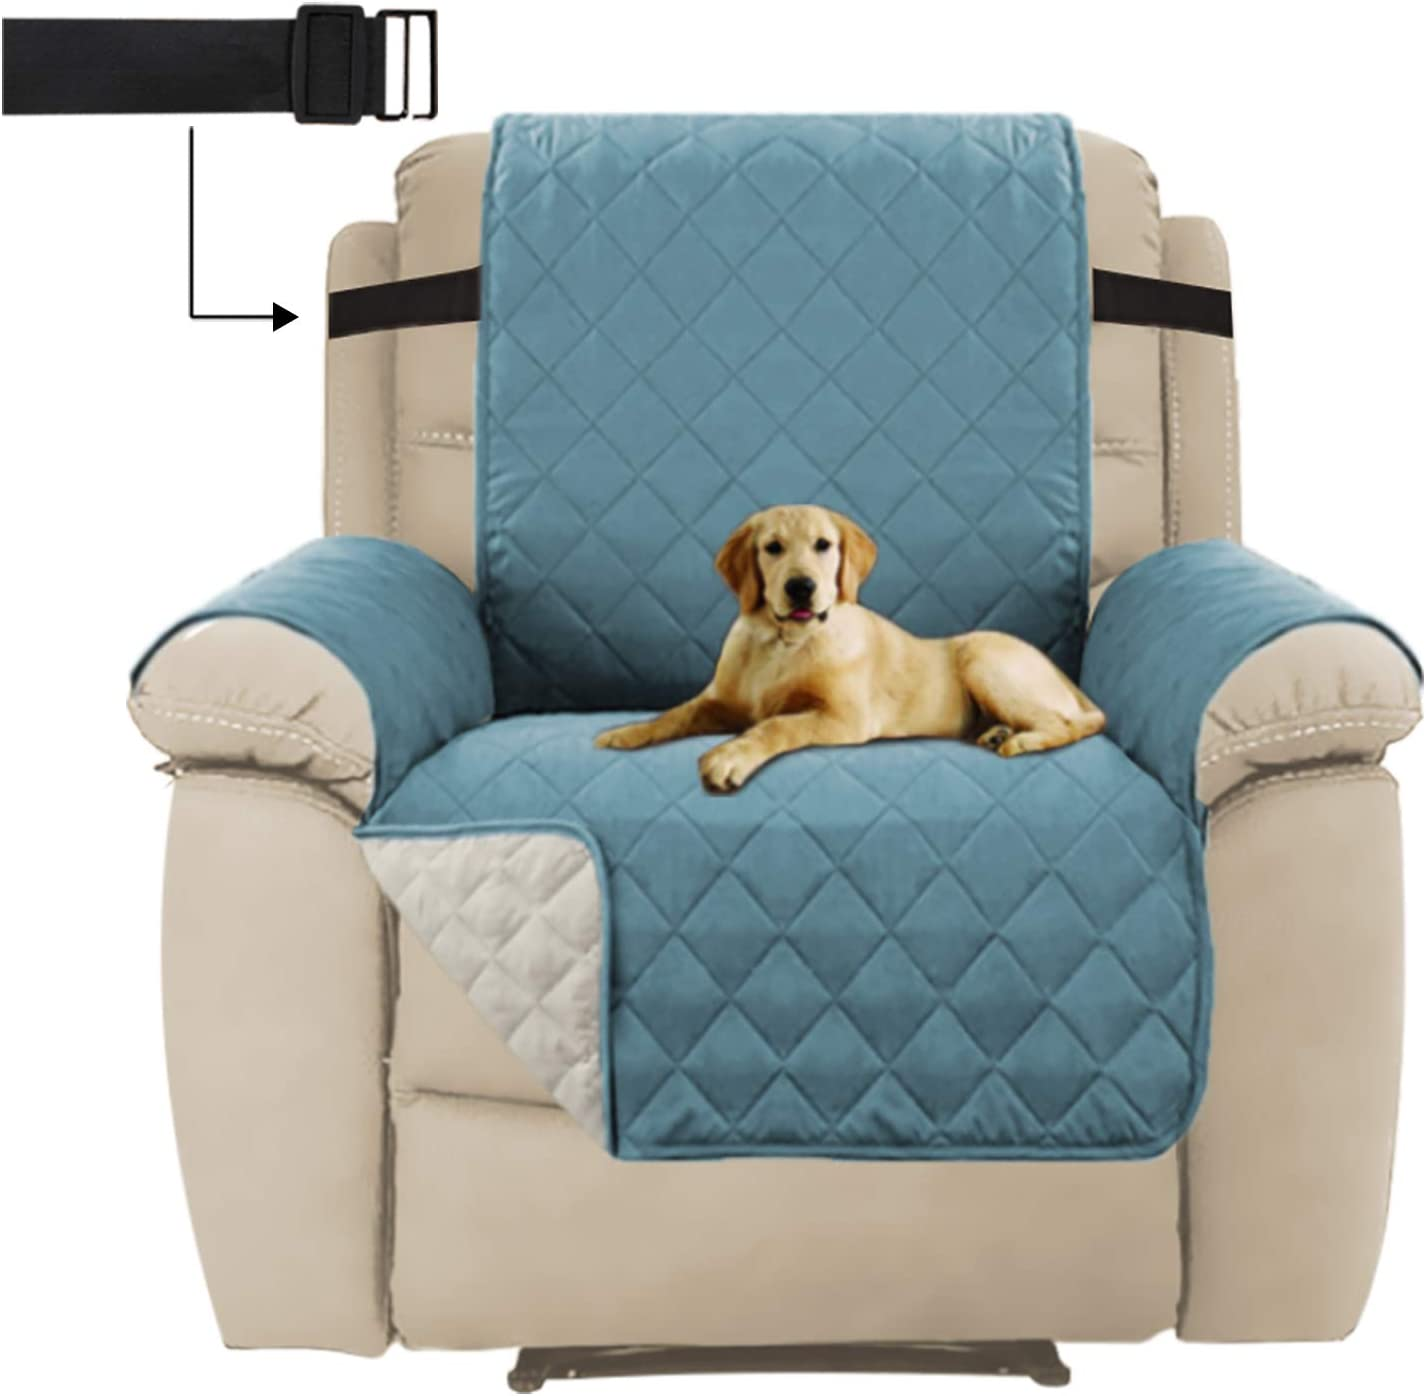 Seat Width Up to 30 Furniture Protector with 2 Elastic Straps H.Versailtex Reversible Recliner Chair Cover Furniture Protector Recliner, Citadel//Beige Water Repellent Recliner Chair Cover